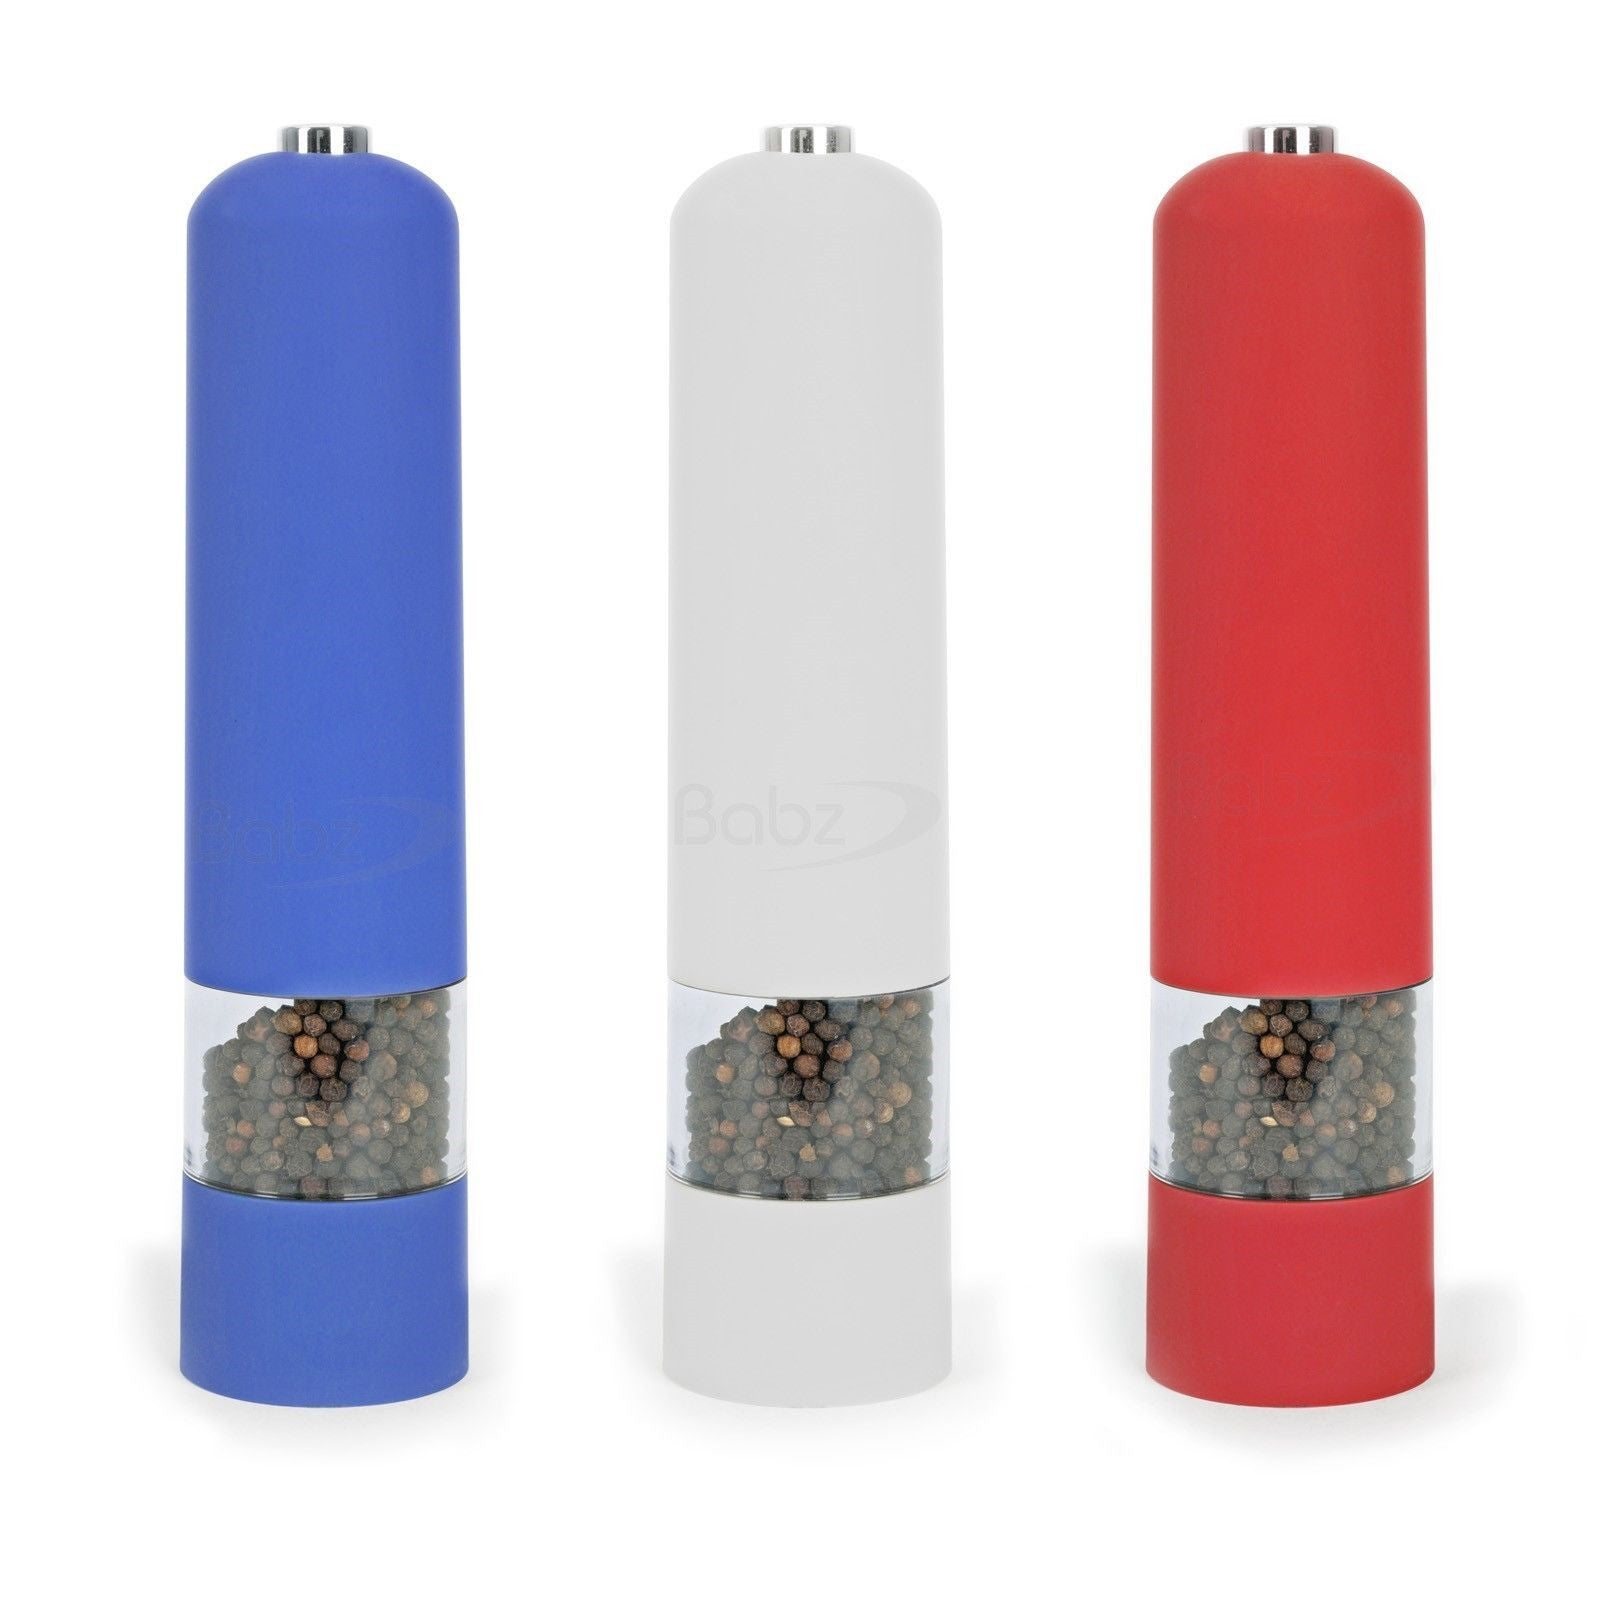 Blue / Red / White ABS Electric Electronic Salt Pepper Mill Grinder Pots